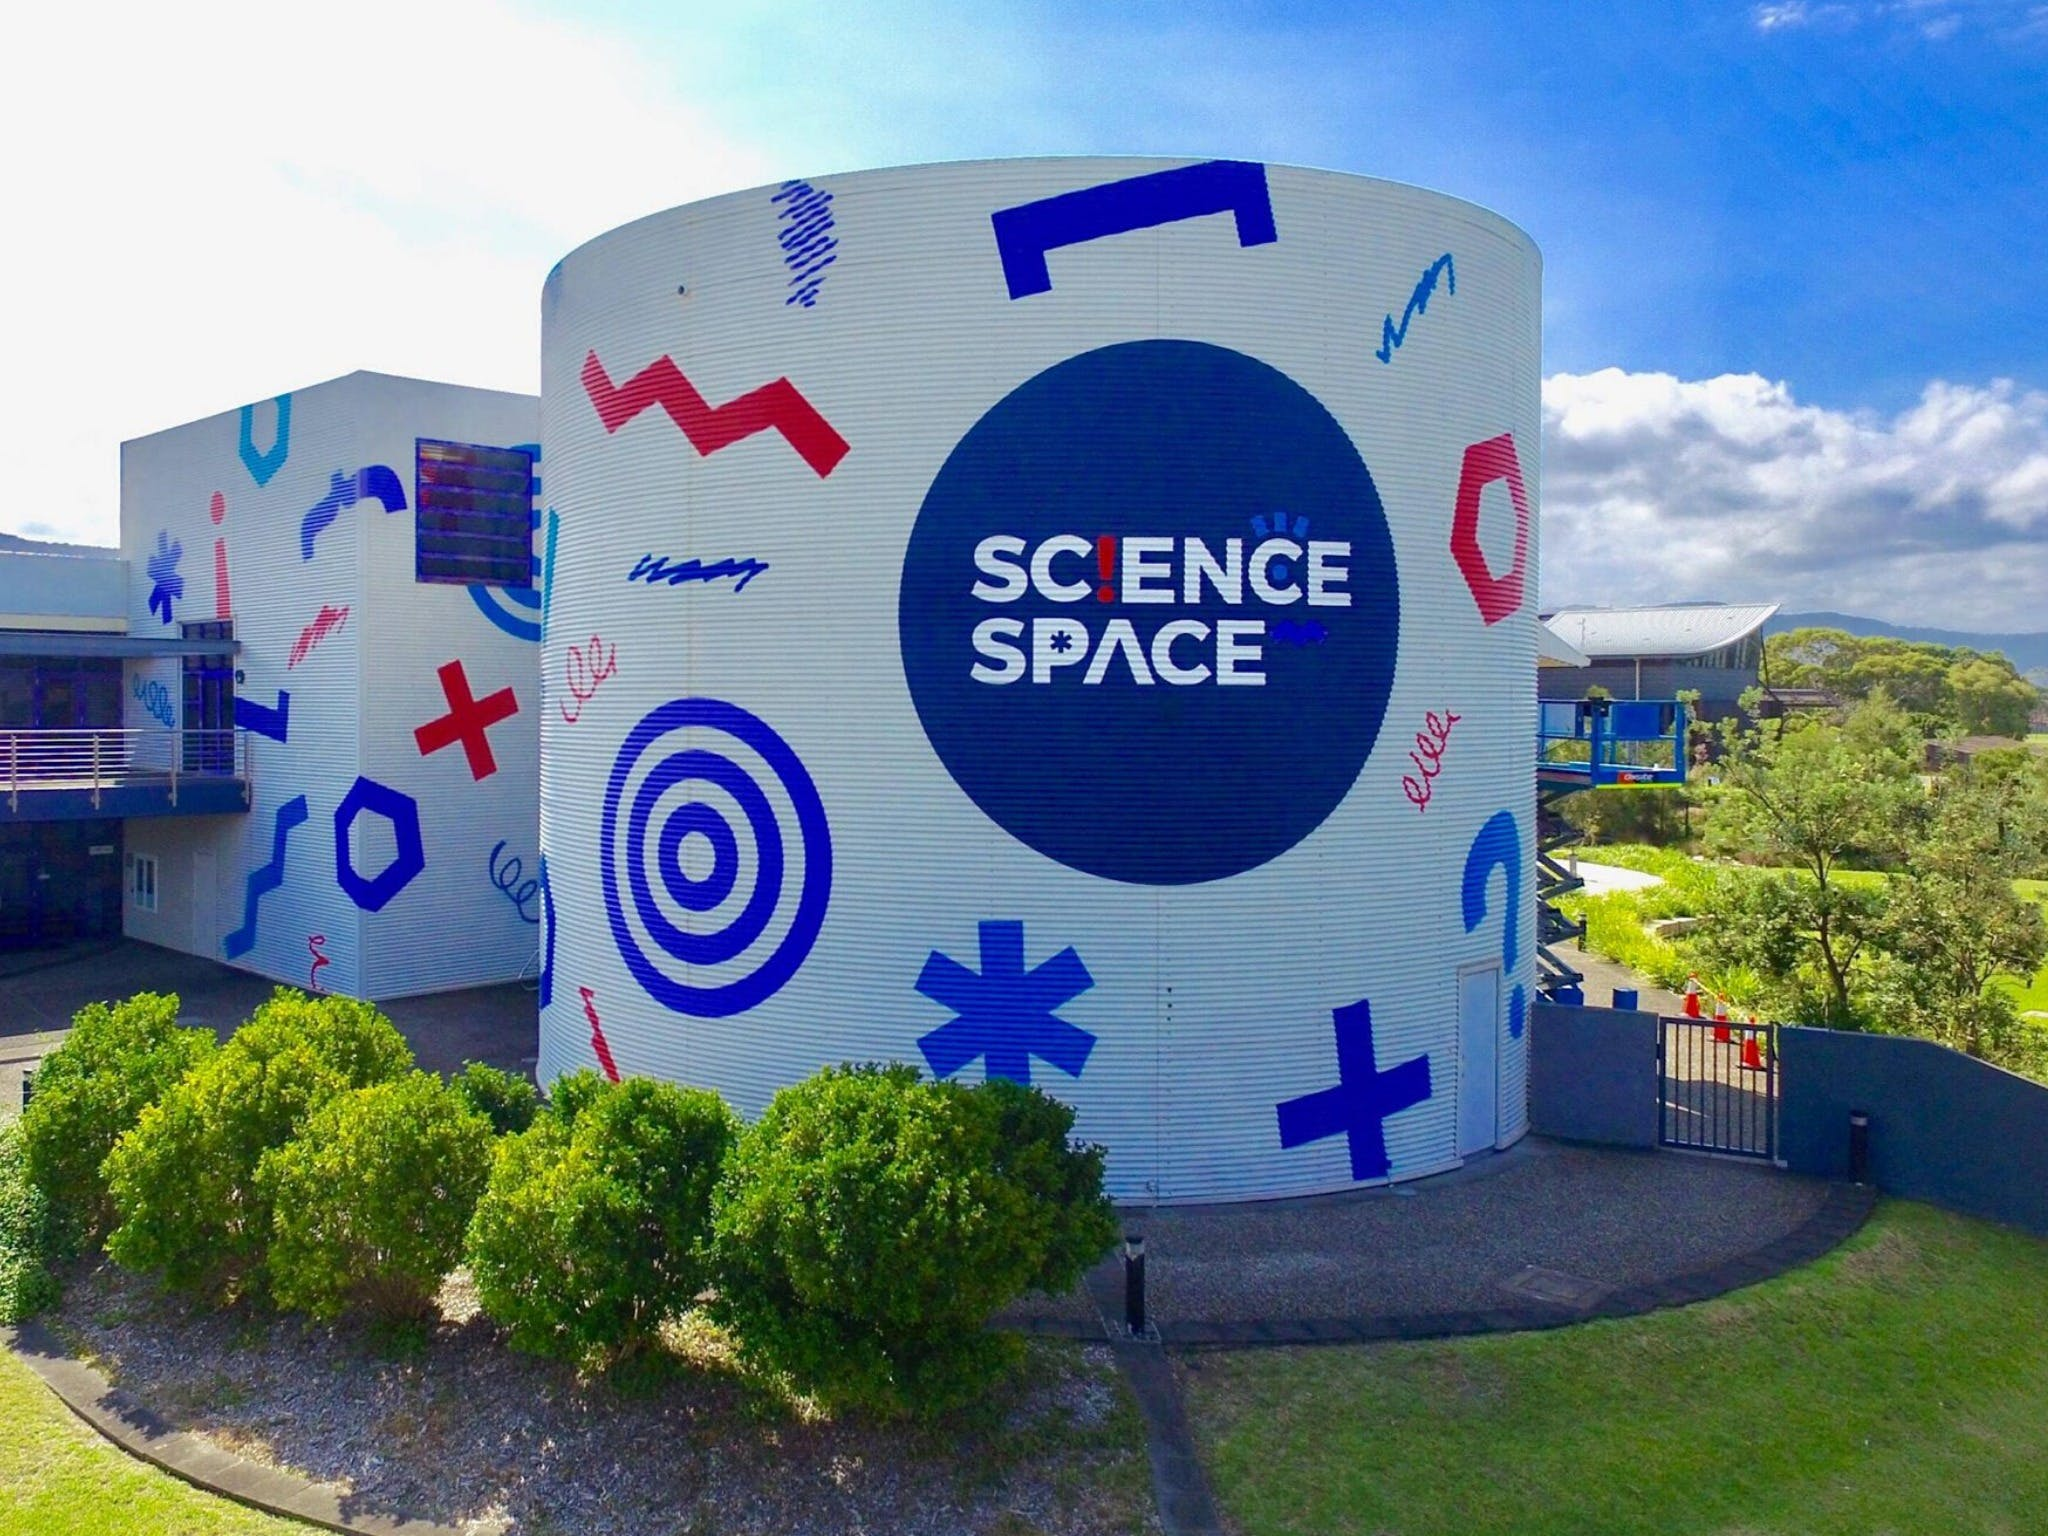 Science Space Grand Reopening Celebration - Pubs and Clubs